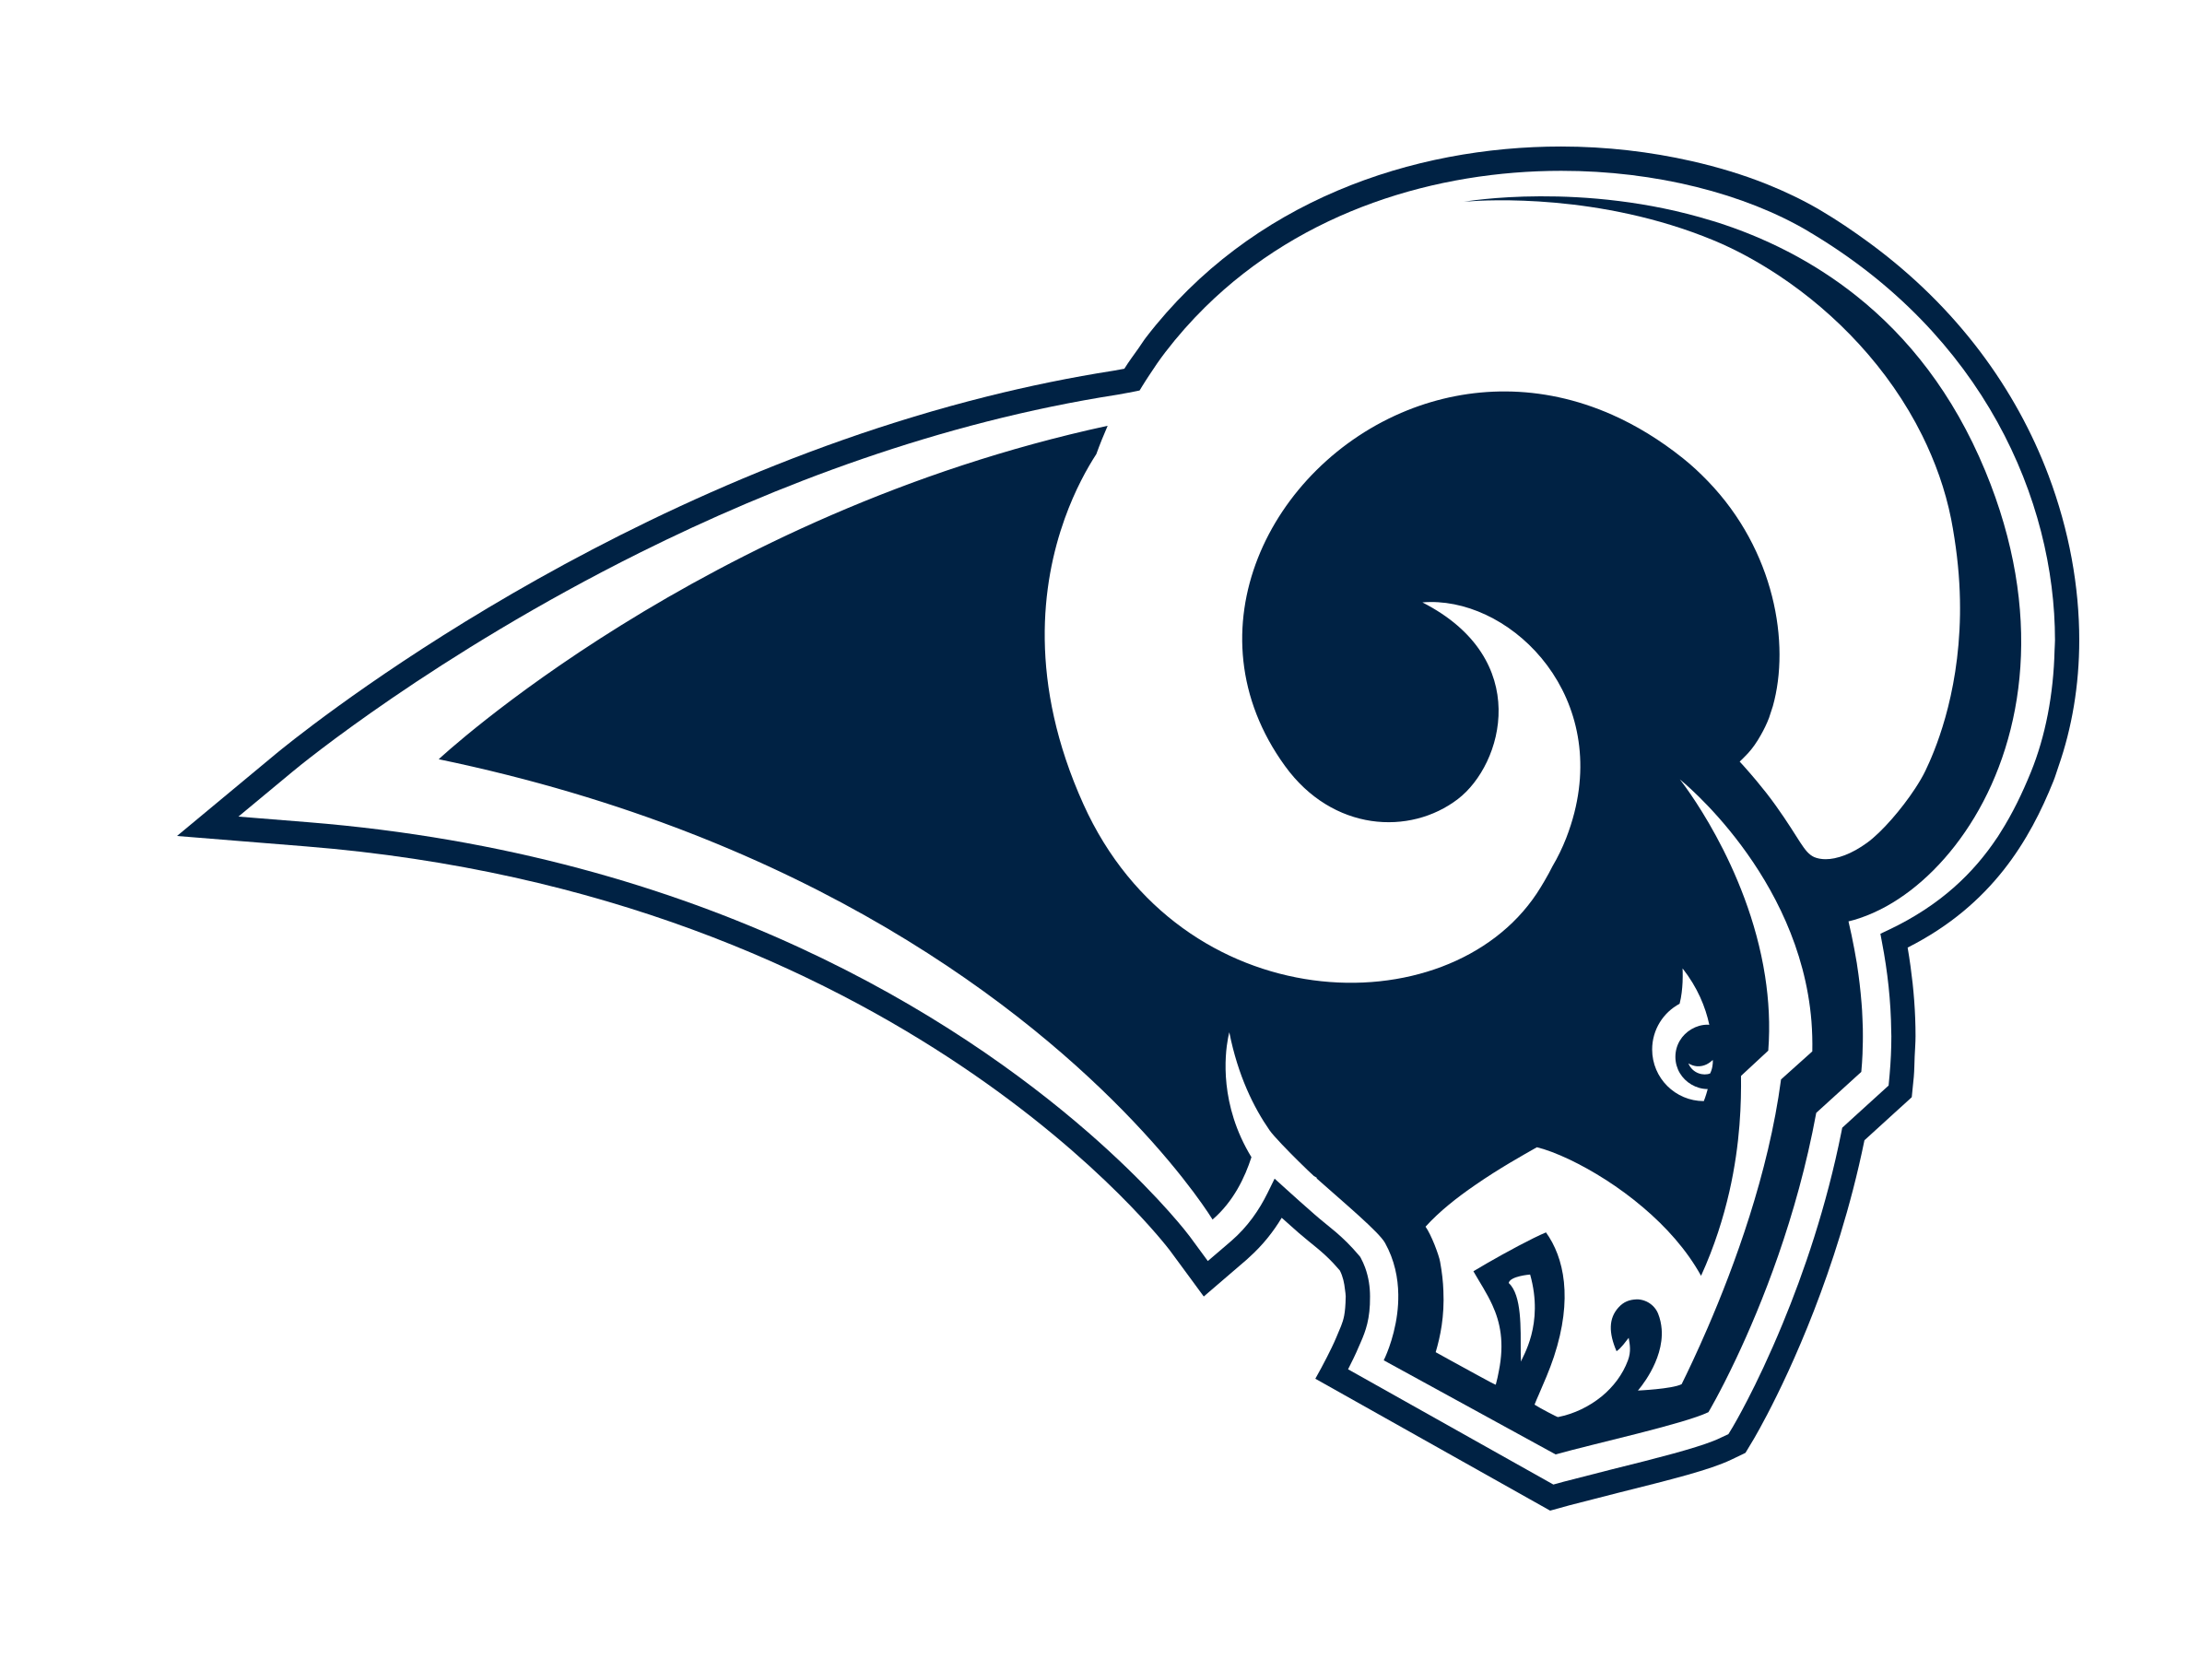 Los Angeles Rams Logo PNG Transparent & SVG Vector.